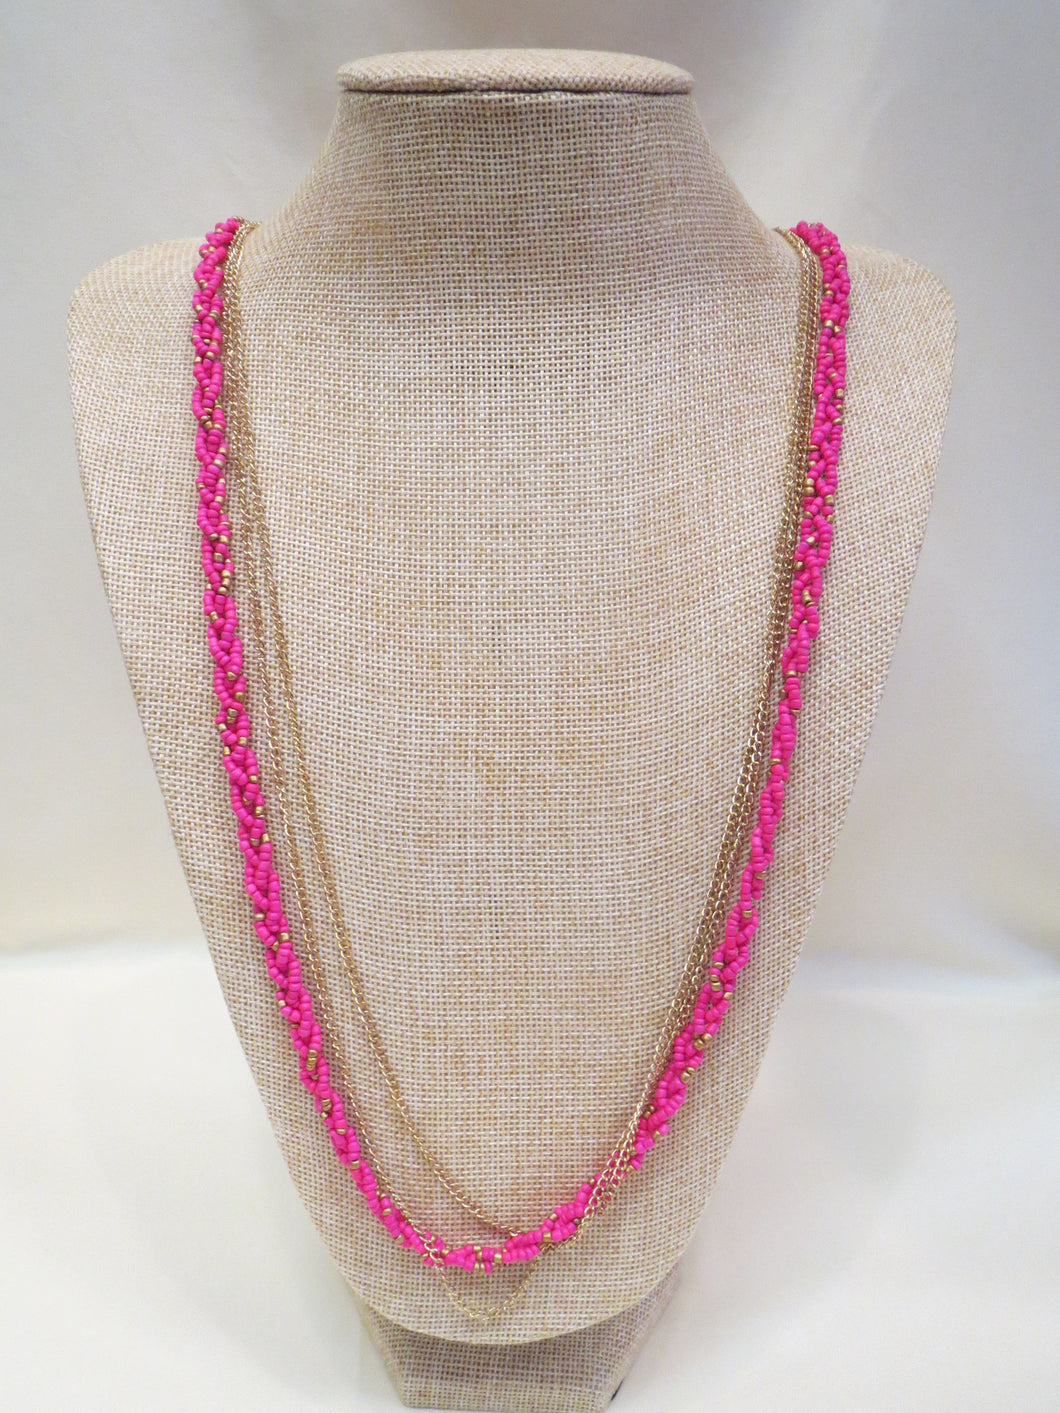 ADO Pink Beads & Gold Chain Necklace | All Dec'd Out